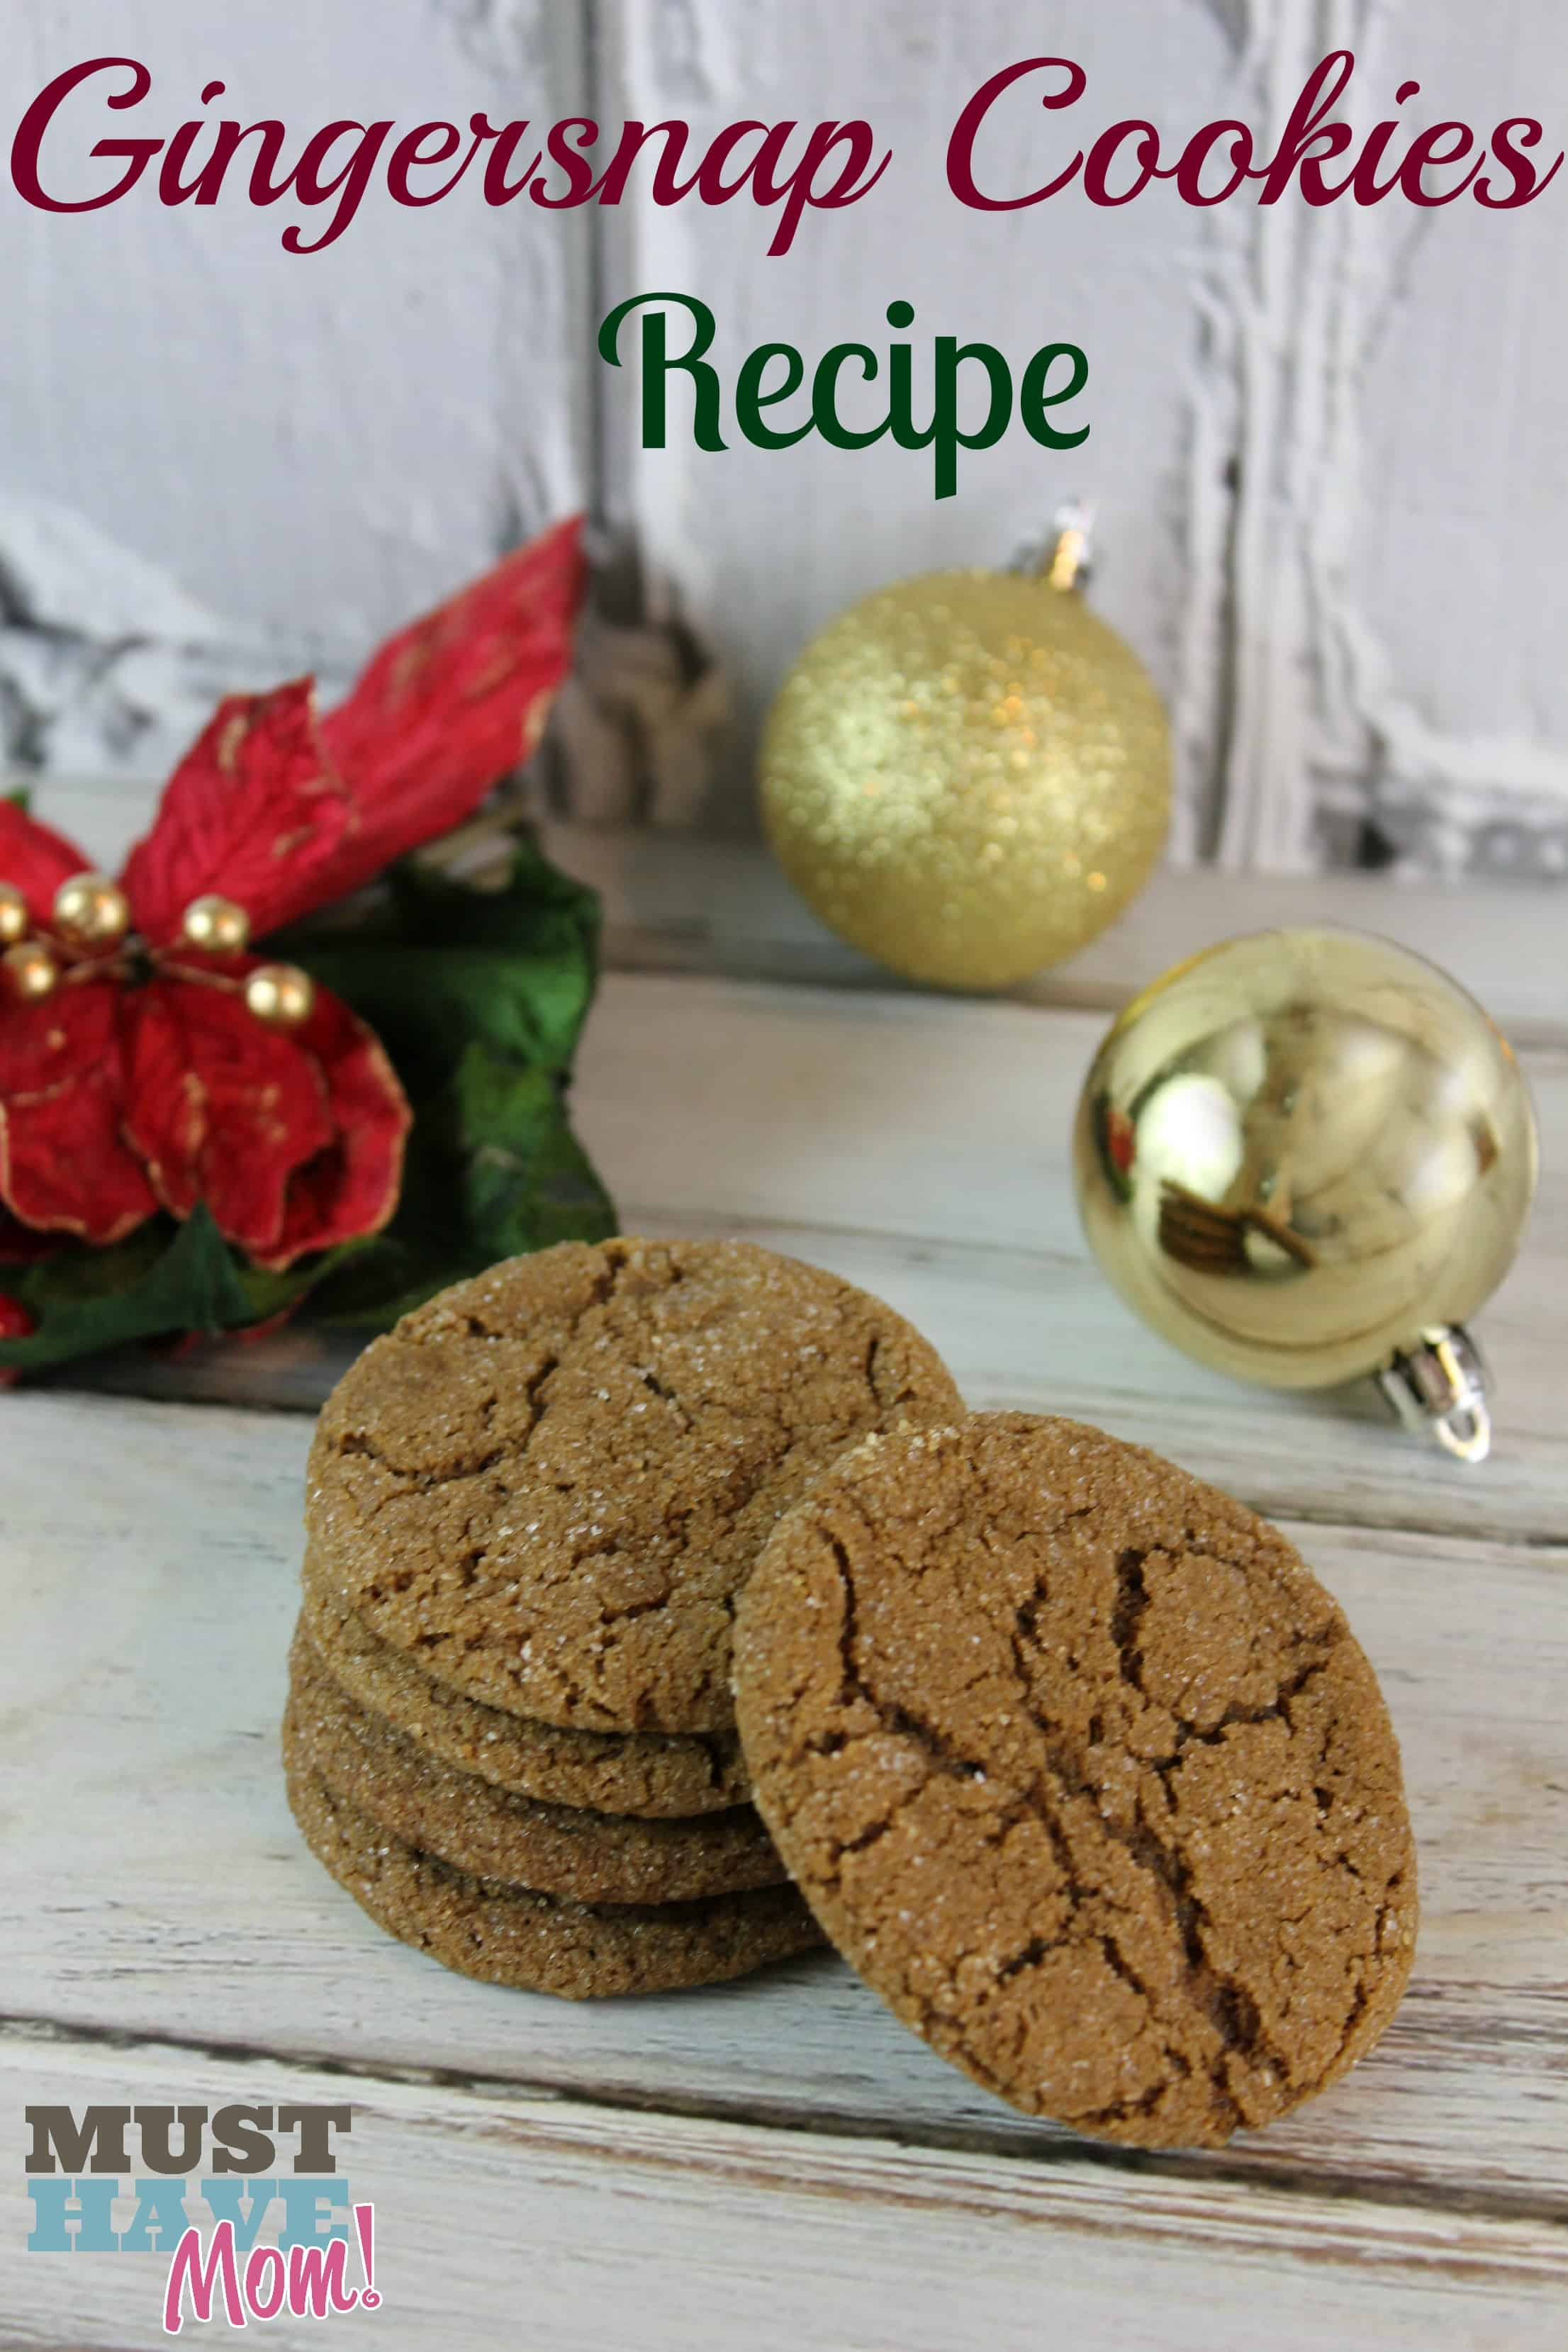 ... gingersnap cookies recipe the best gingersnap cookies soft and chewy